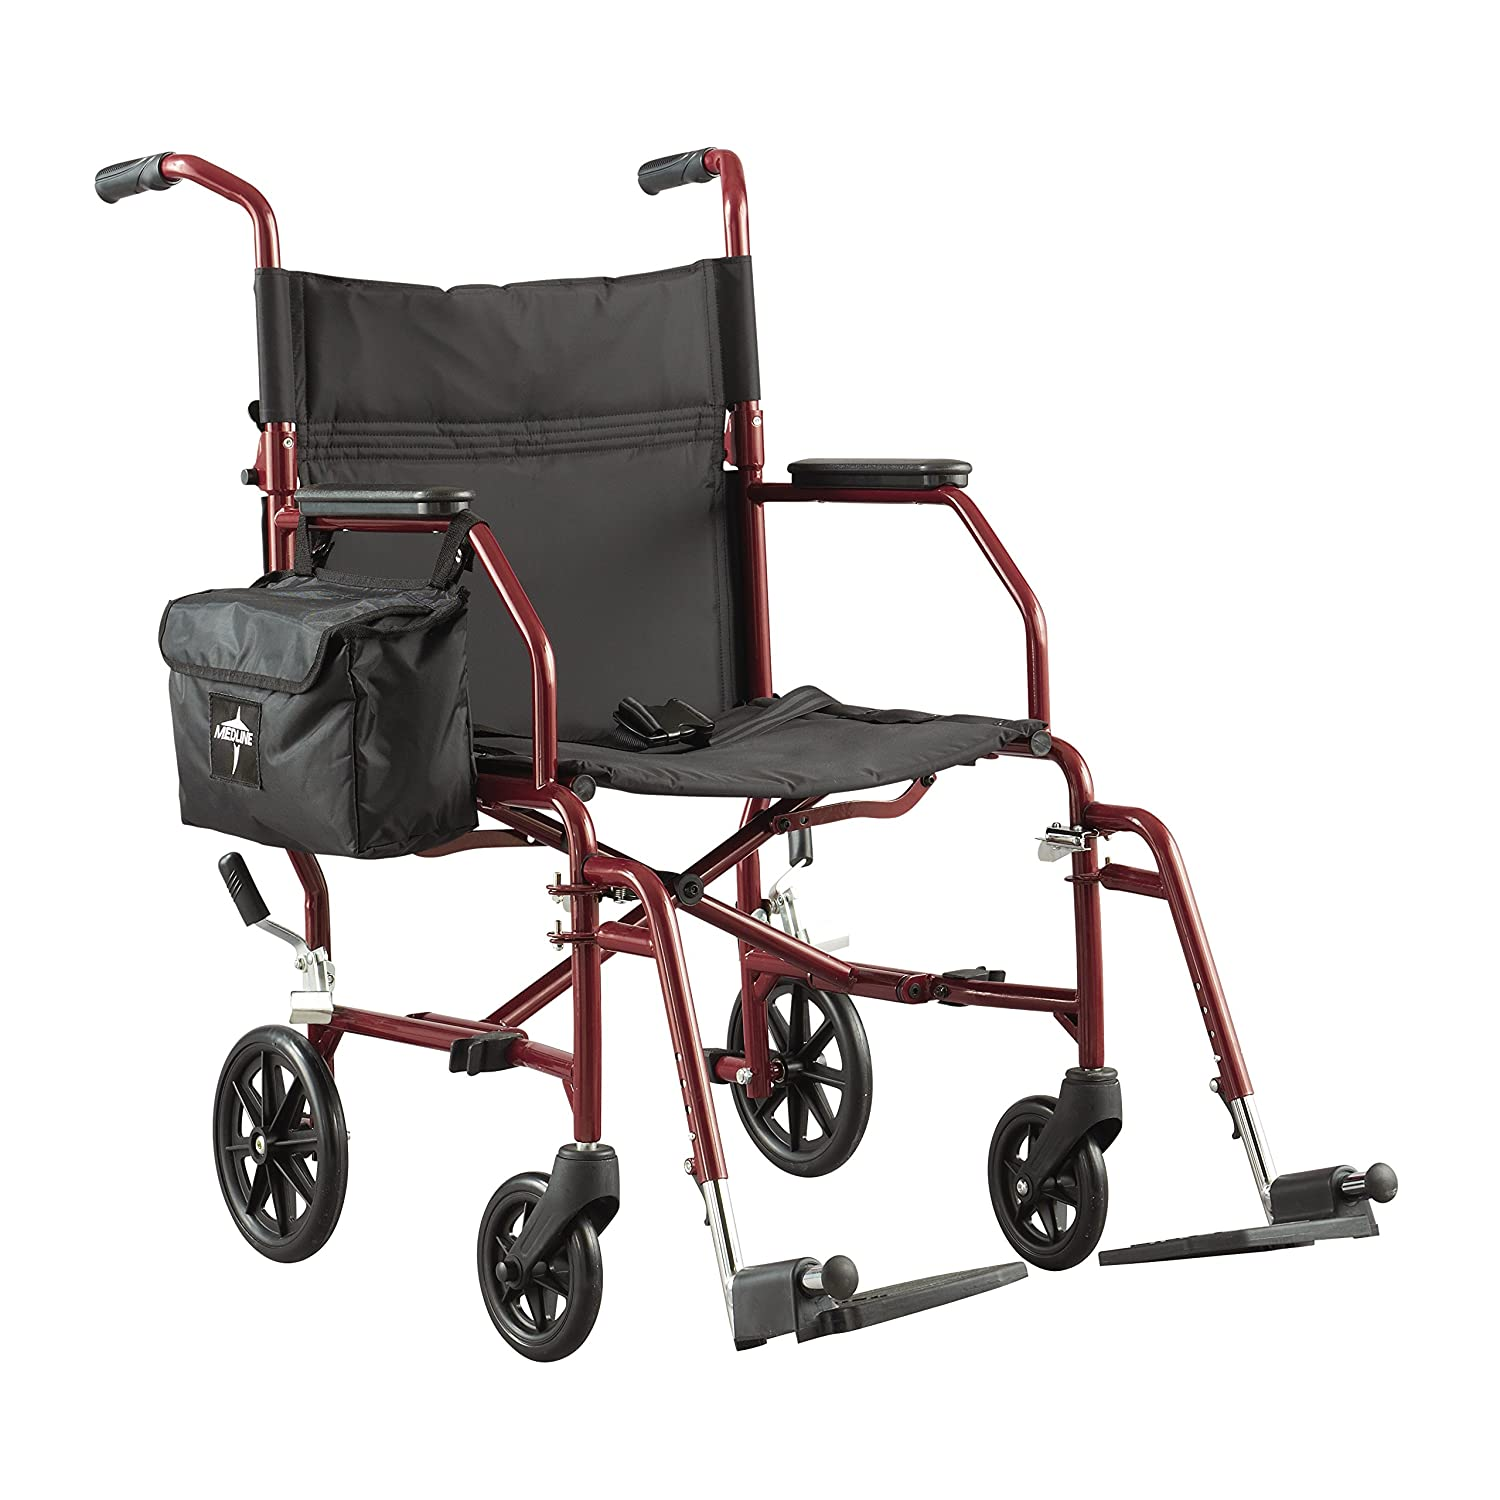 Transport chair amazon - Amazon Com Medline Lightweight Steel Transport Chair 19 Wide Seat Desk Length Arms Swing Away Footrests Burgundy Frame Health Personal Care